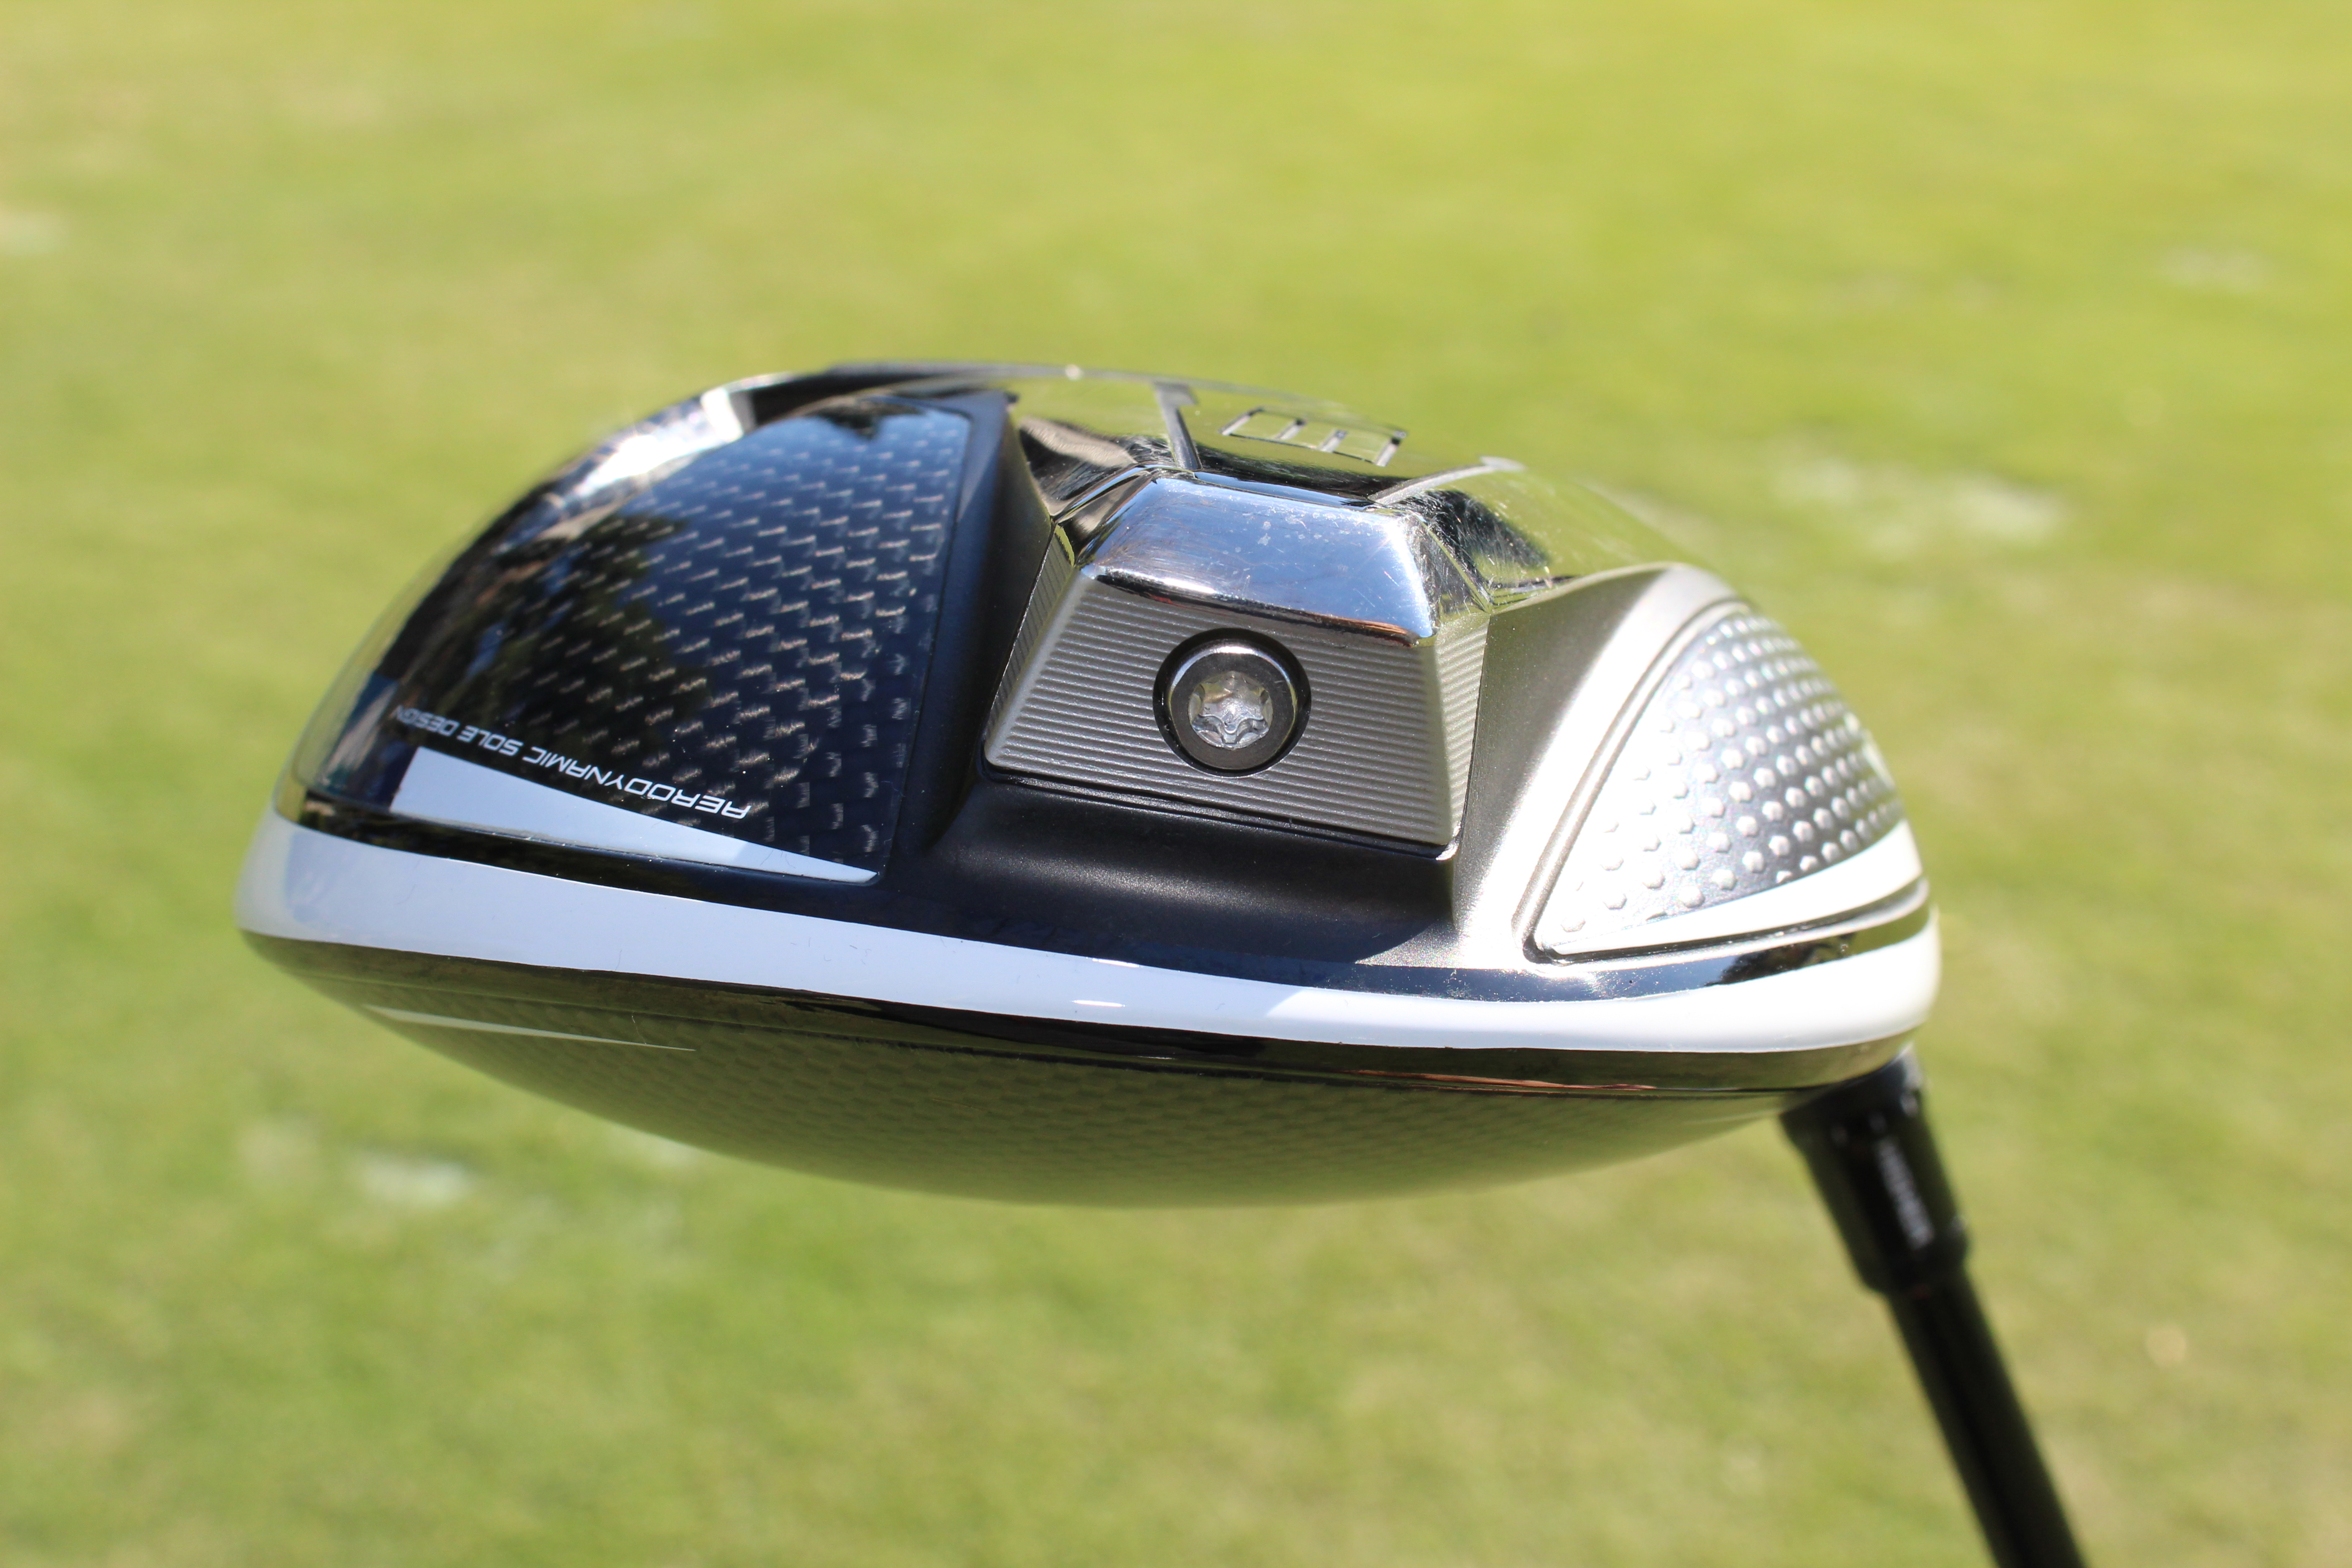 New 2020 TaylorMade SIM and SIM Max Drivers